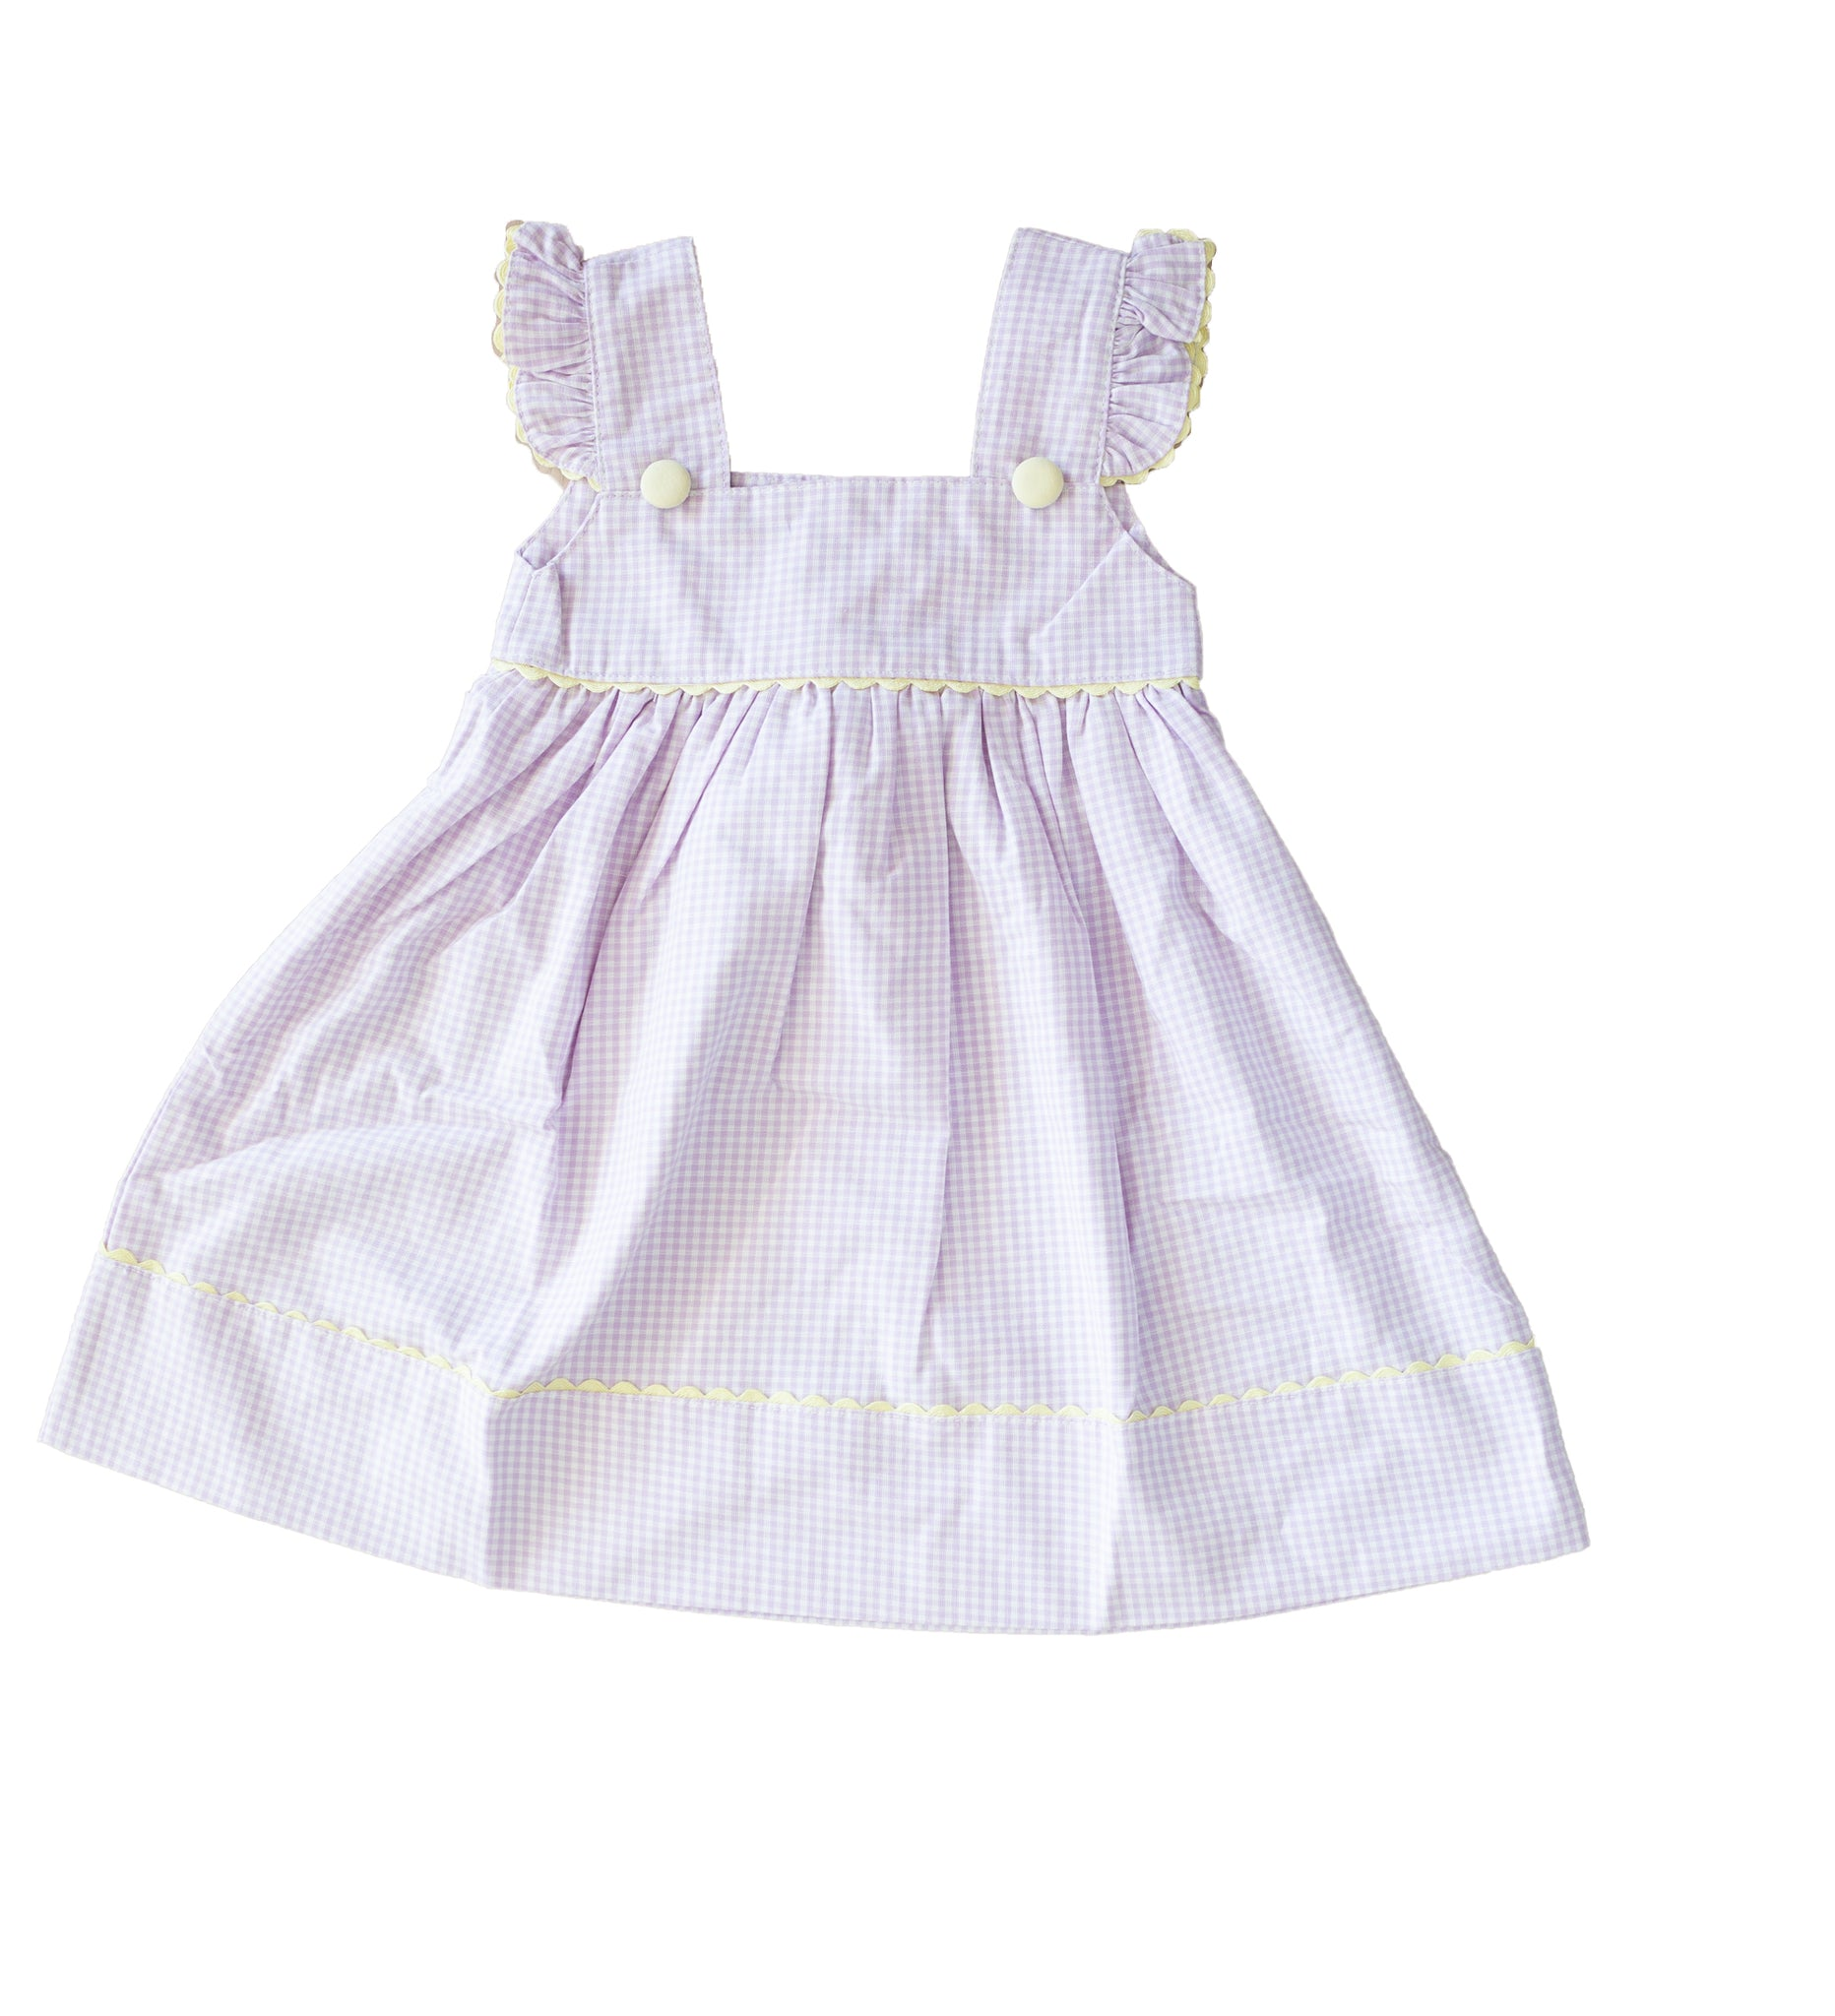 Lavender Stripe Play Dress - Amy Berry Home